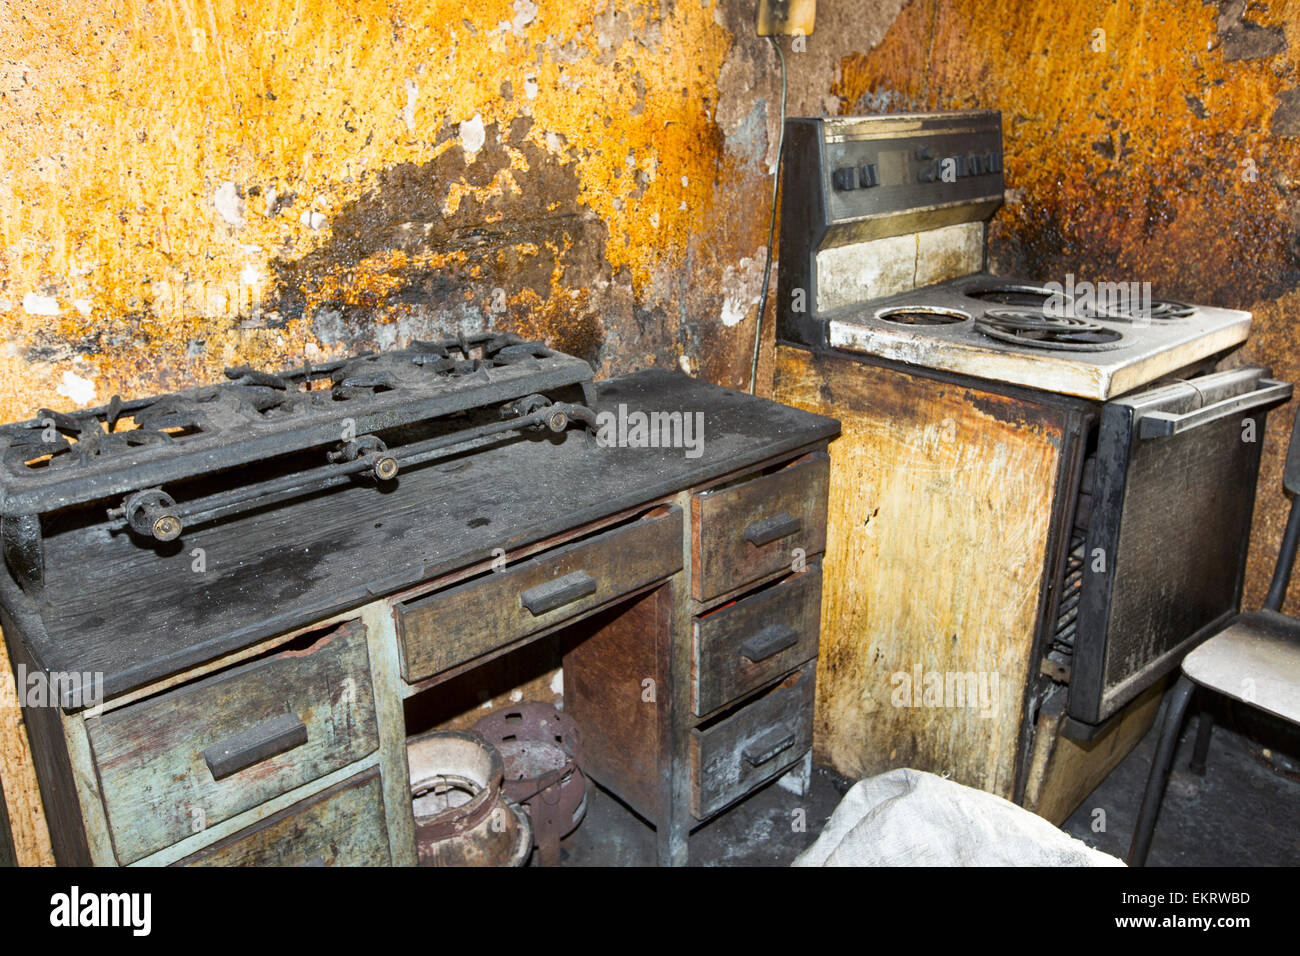 A filthy kitchen in Zomba in Malawi, Africa. - Stock Image